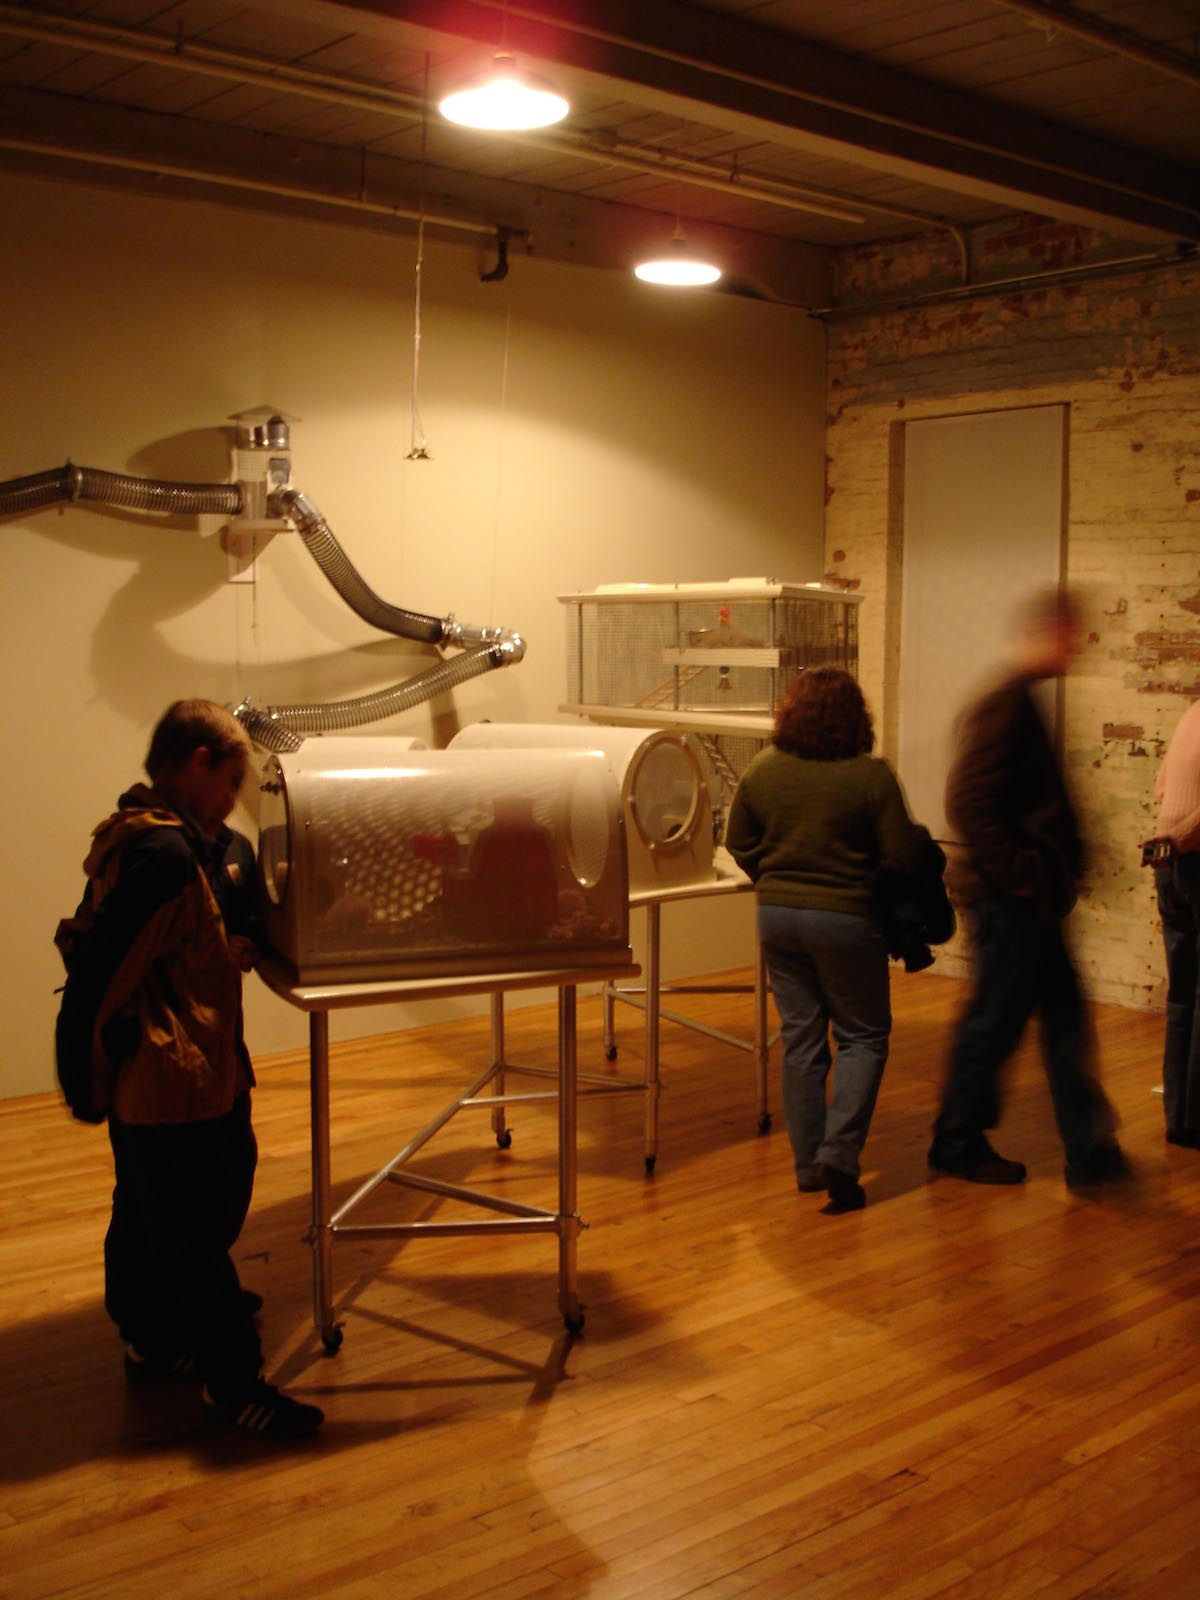 Kathy High, Embracing Animal (2004-2006), mixed media installation including 3 live transgenic rats (reproduced with permission)